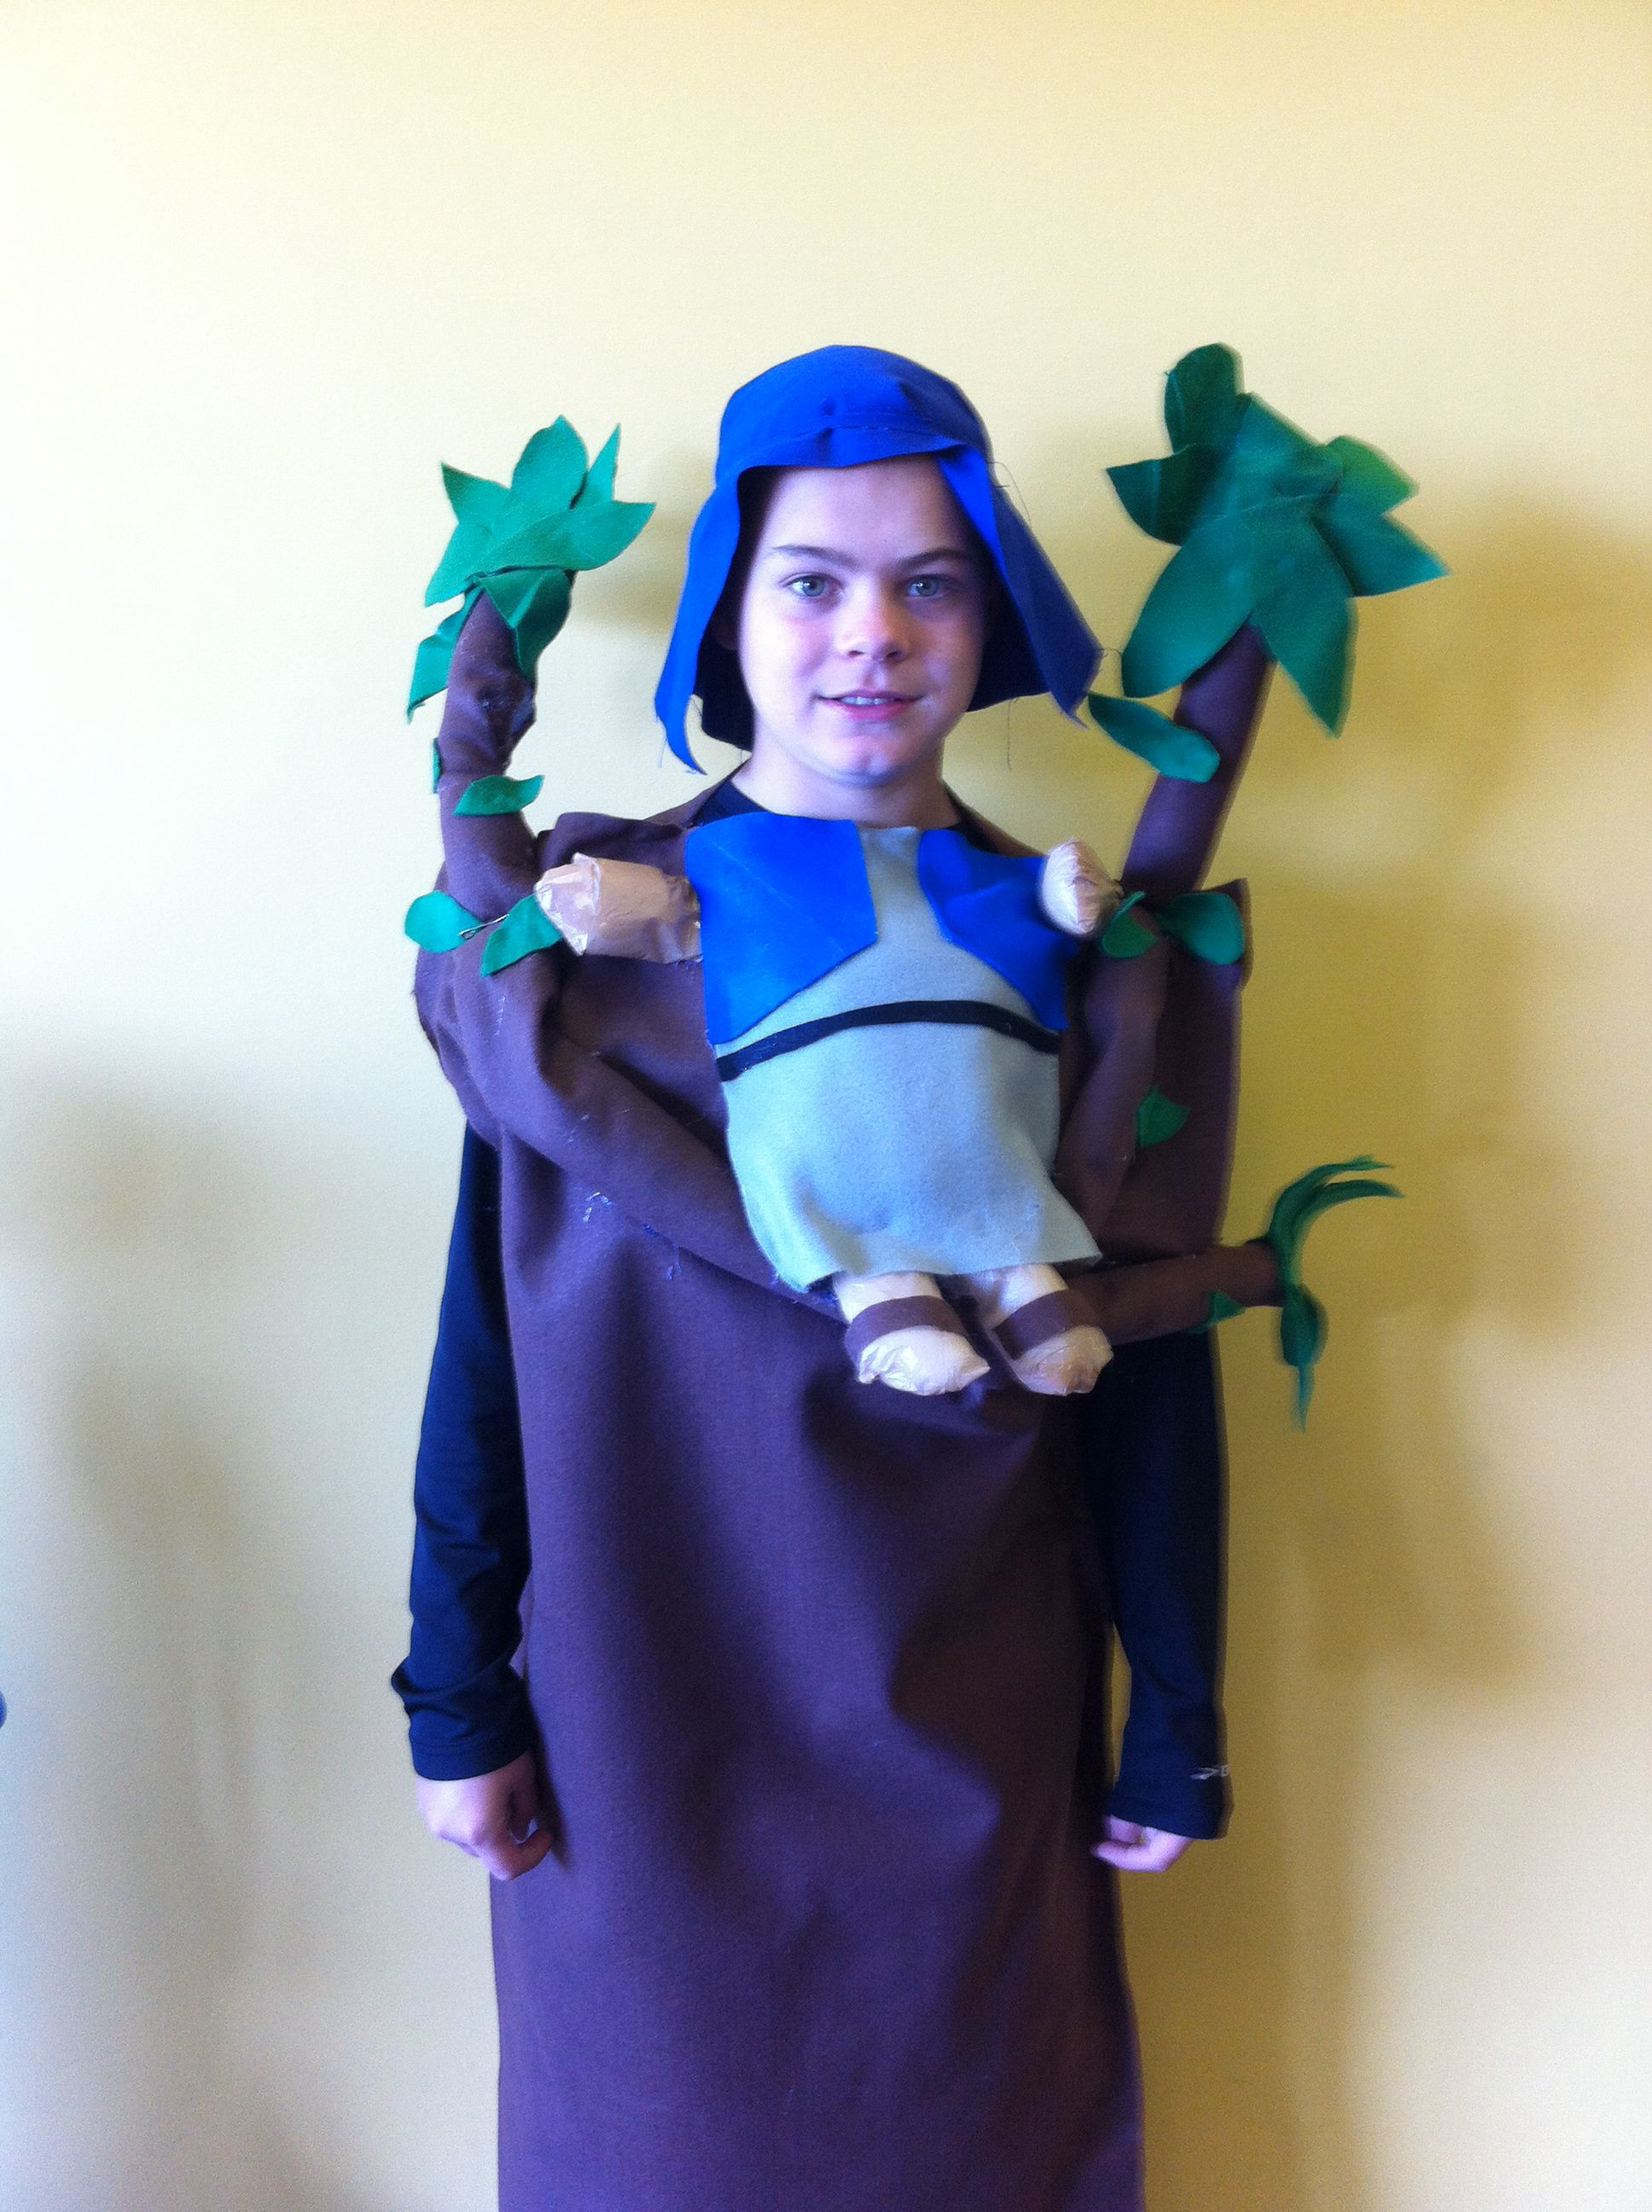 Our Homemade Zaccheus Costume For Church Messy Church Costumes